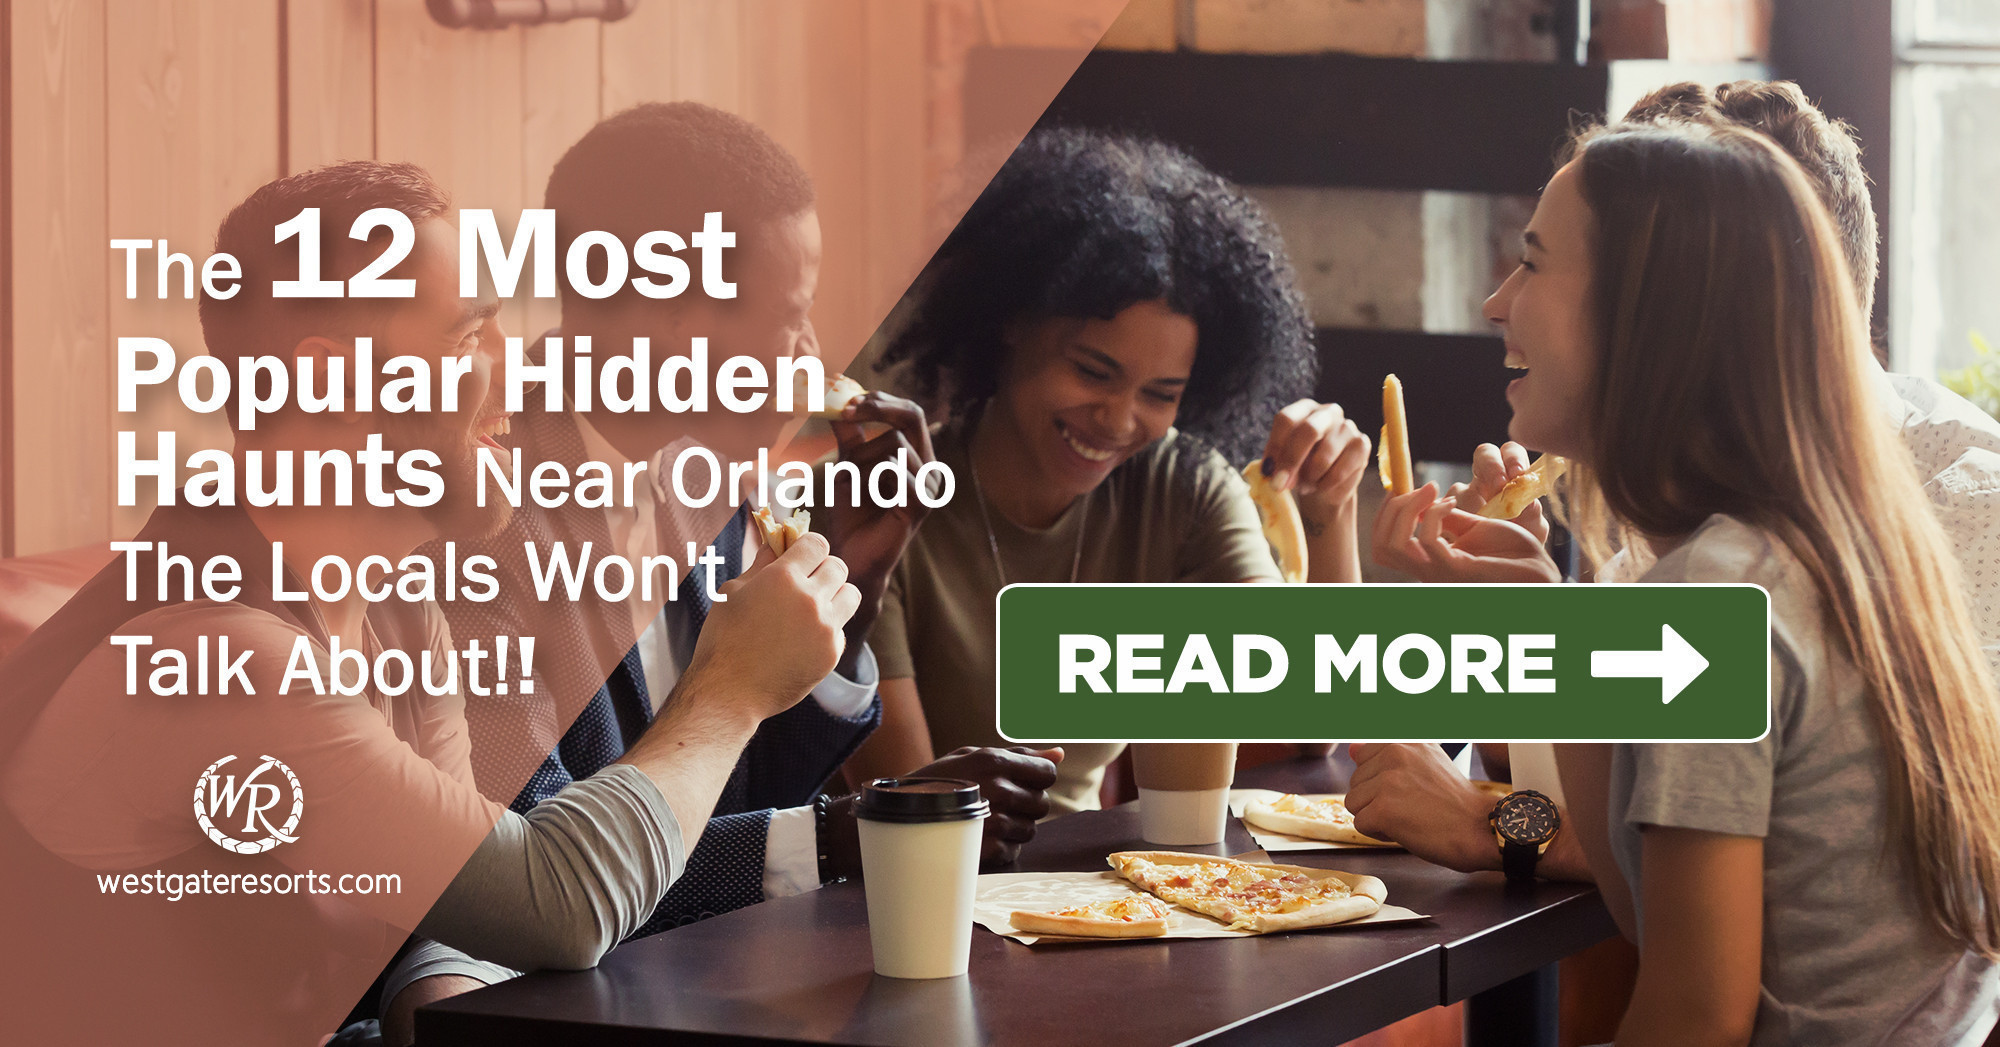 The 12 Most Popular Hidden Haunts Near Orlando the Locals Won't Talk About! | Orlando Trip Guide | Westgate Orlando Resorts